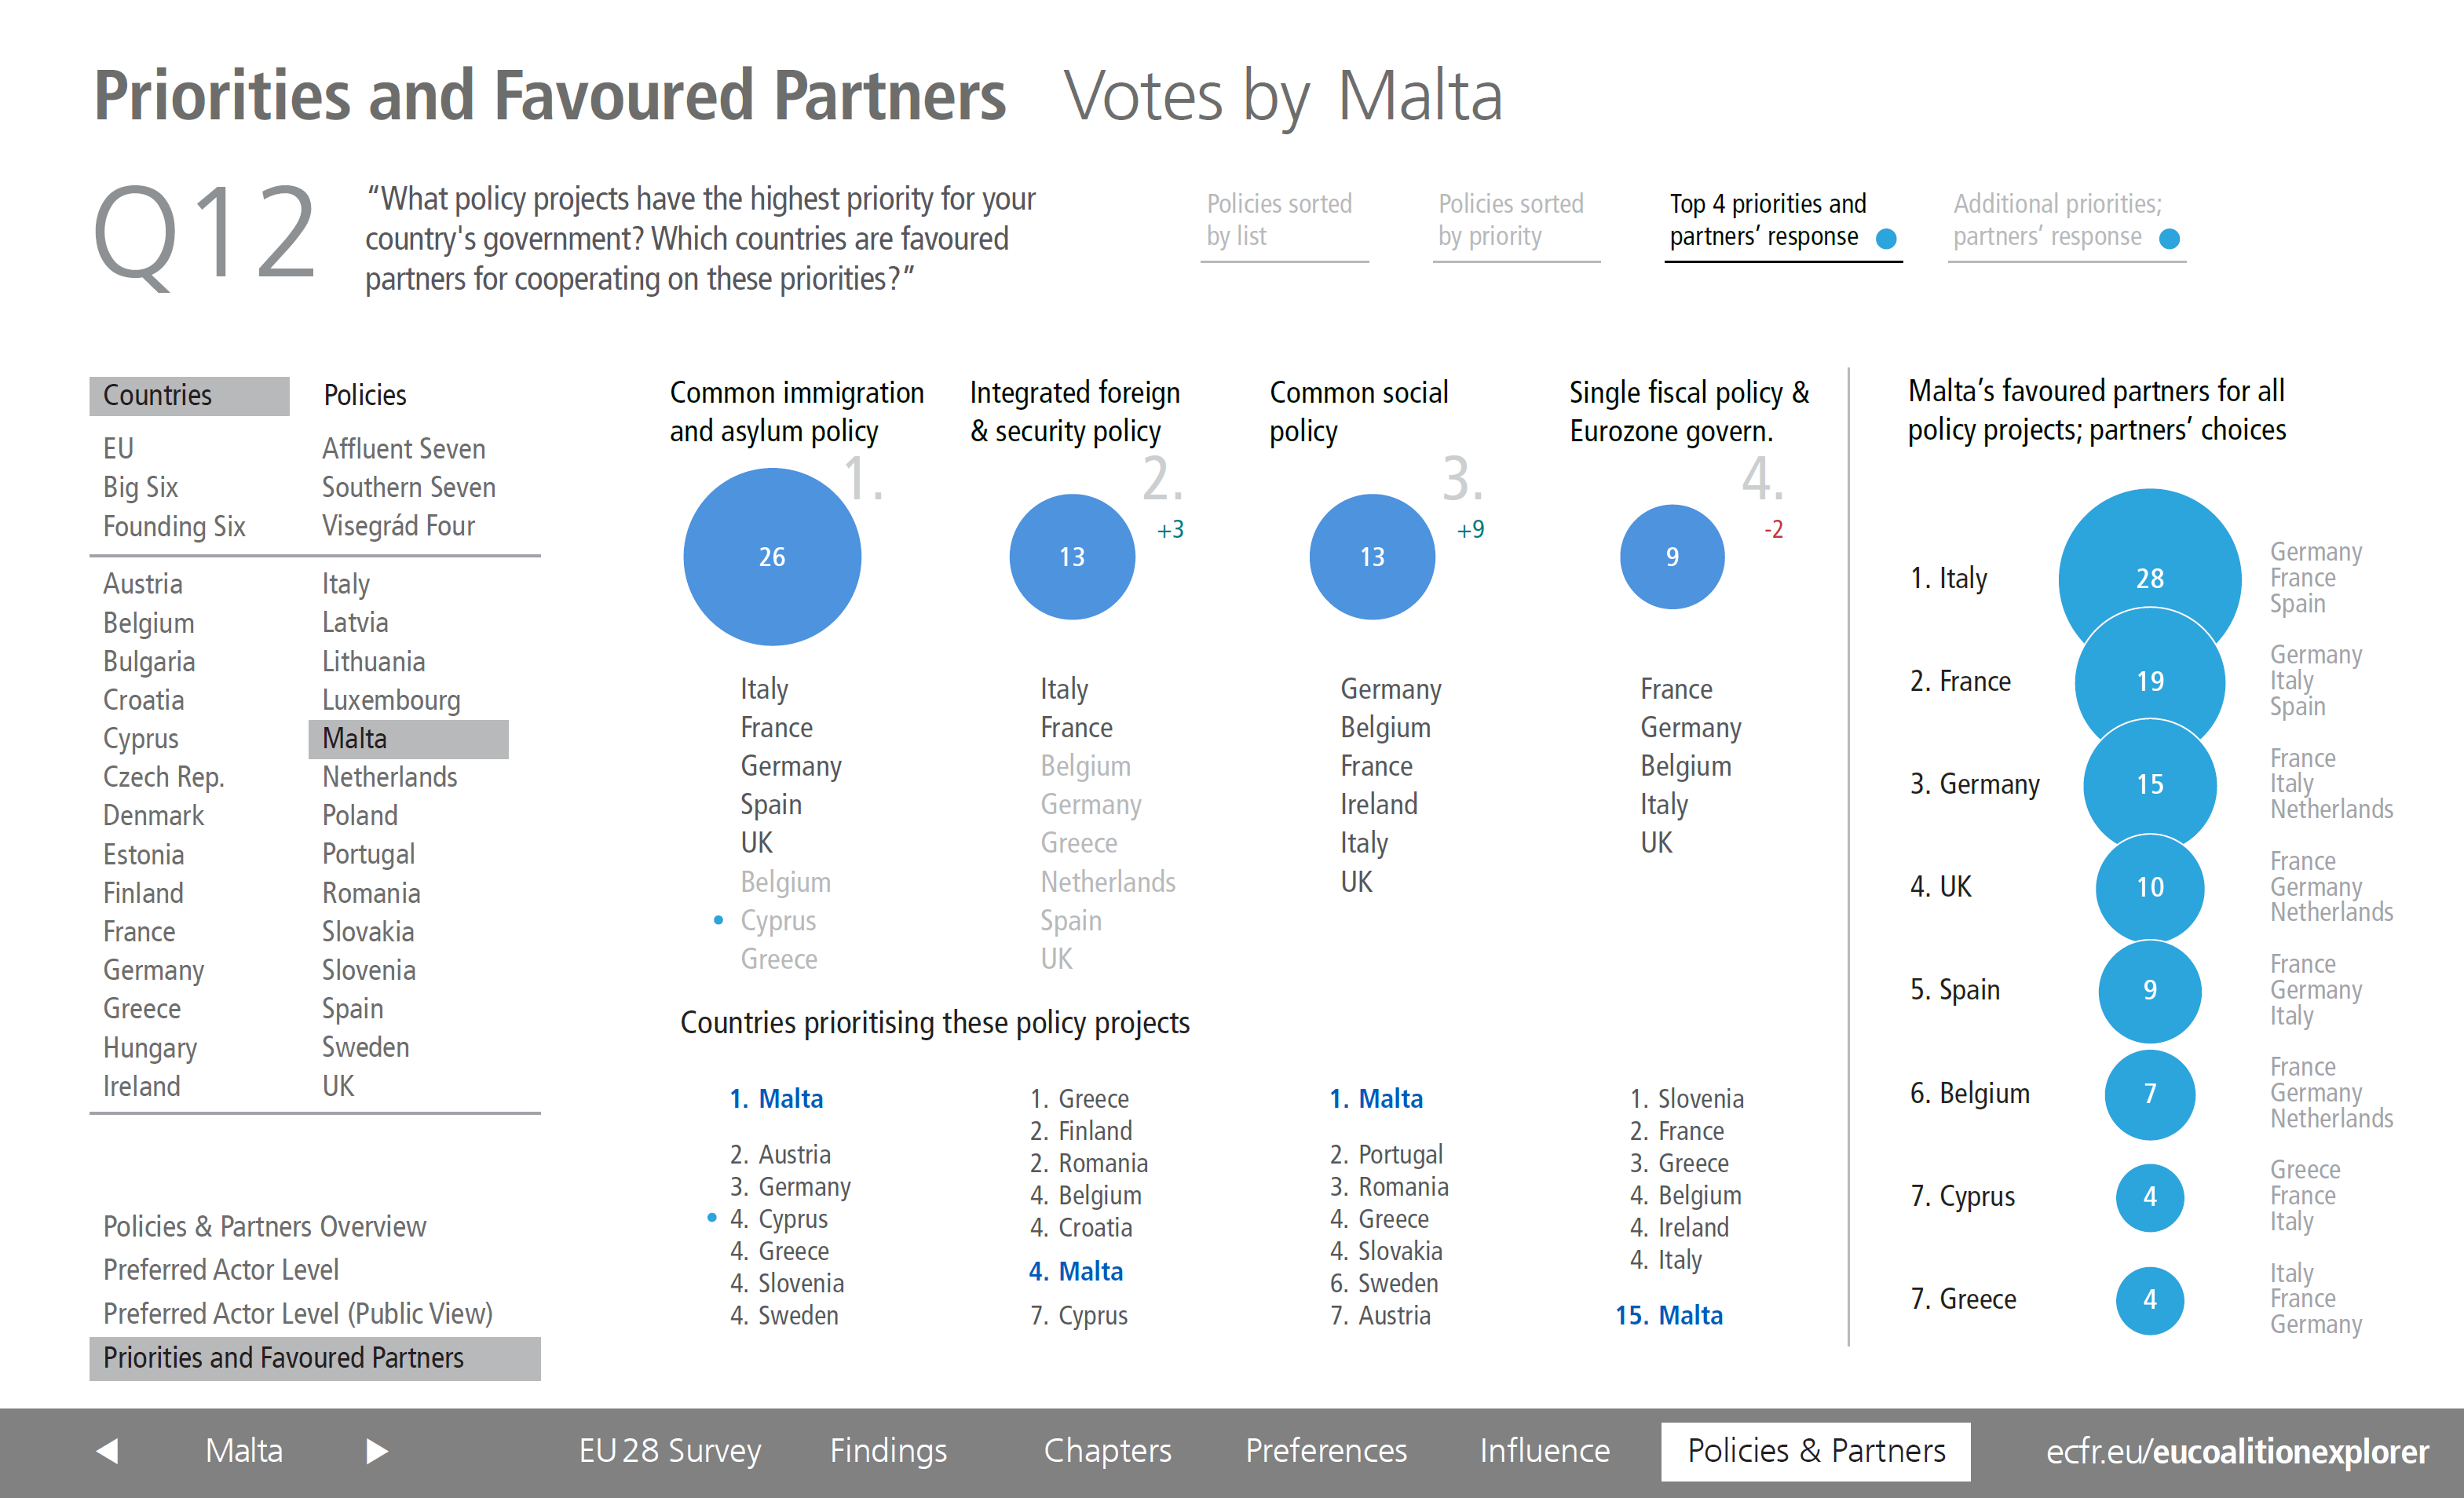 Malta Priorities and Partners ECFR